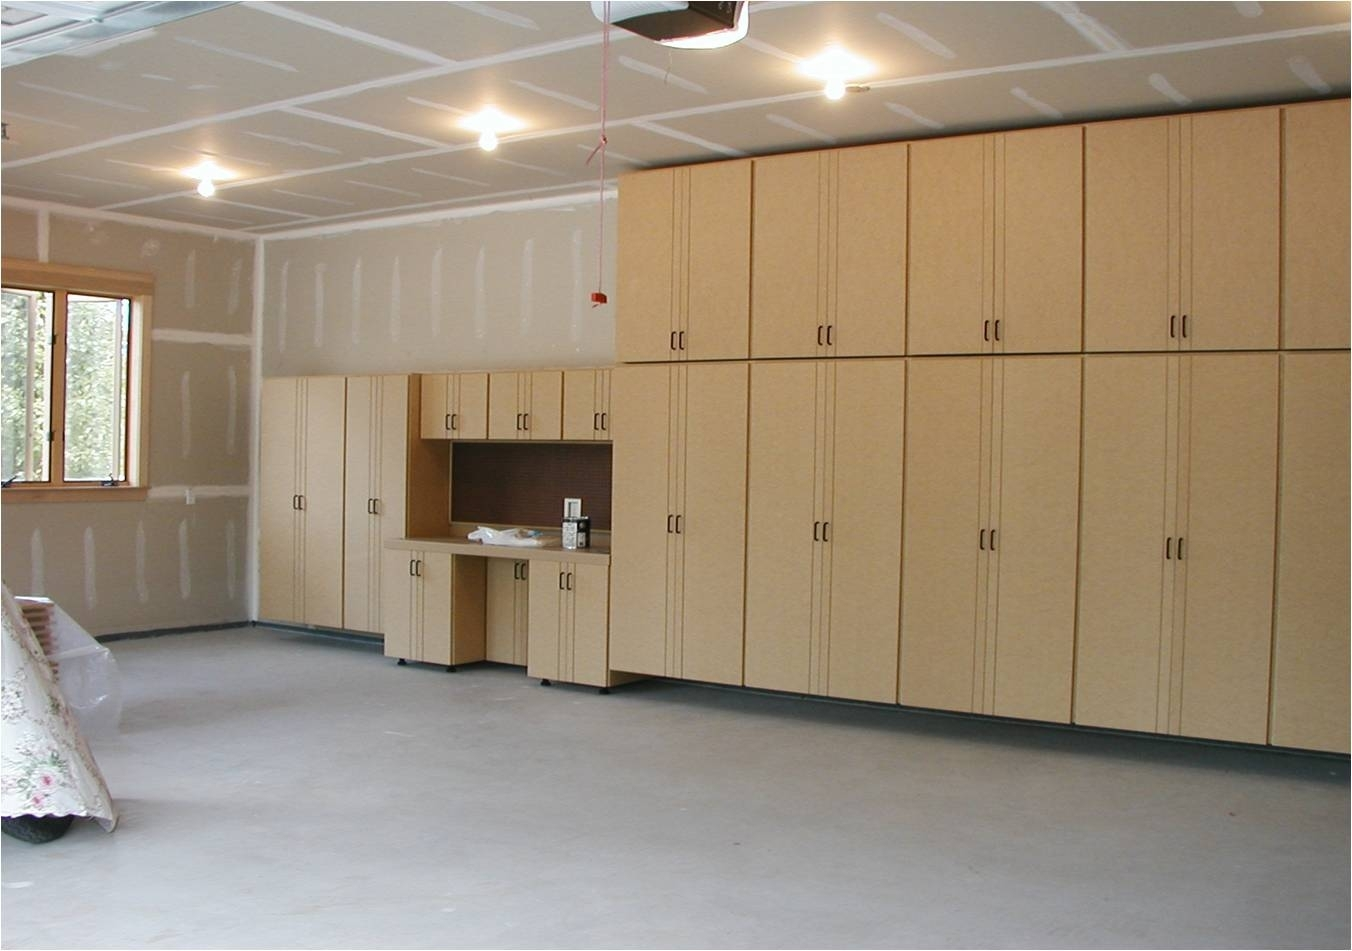 Storage Cabinets Floor To Ceiling